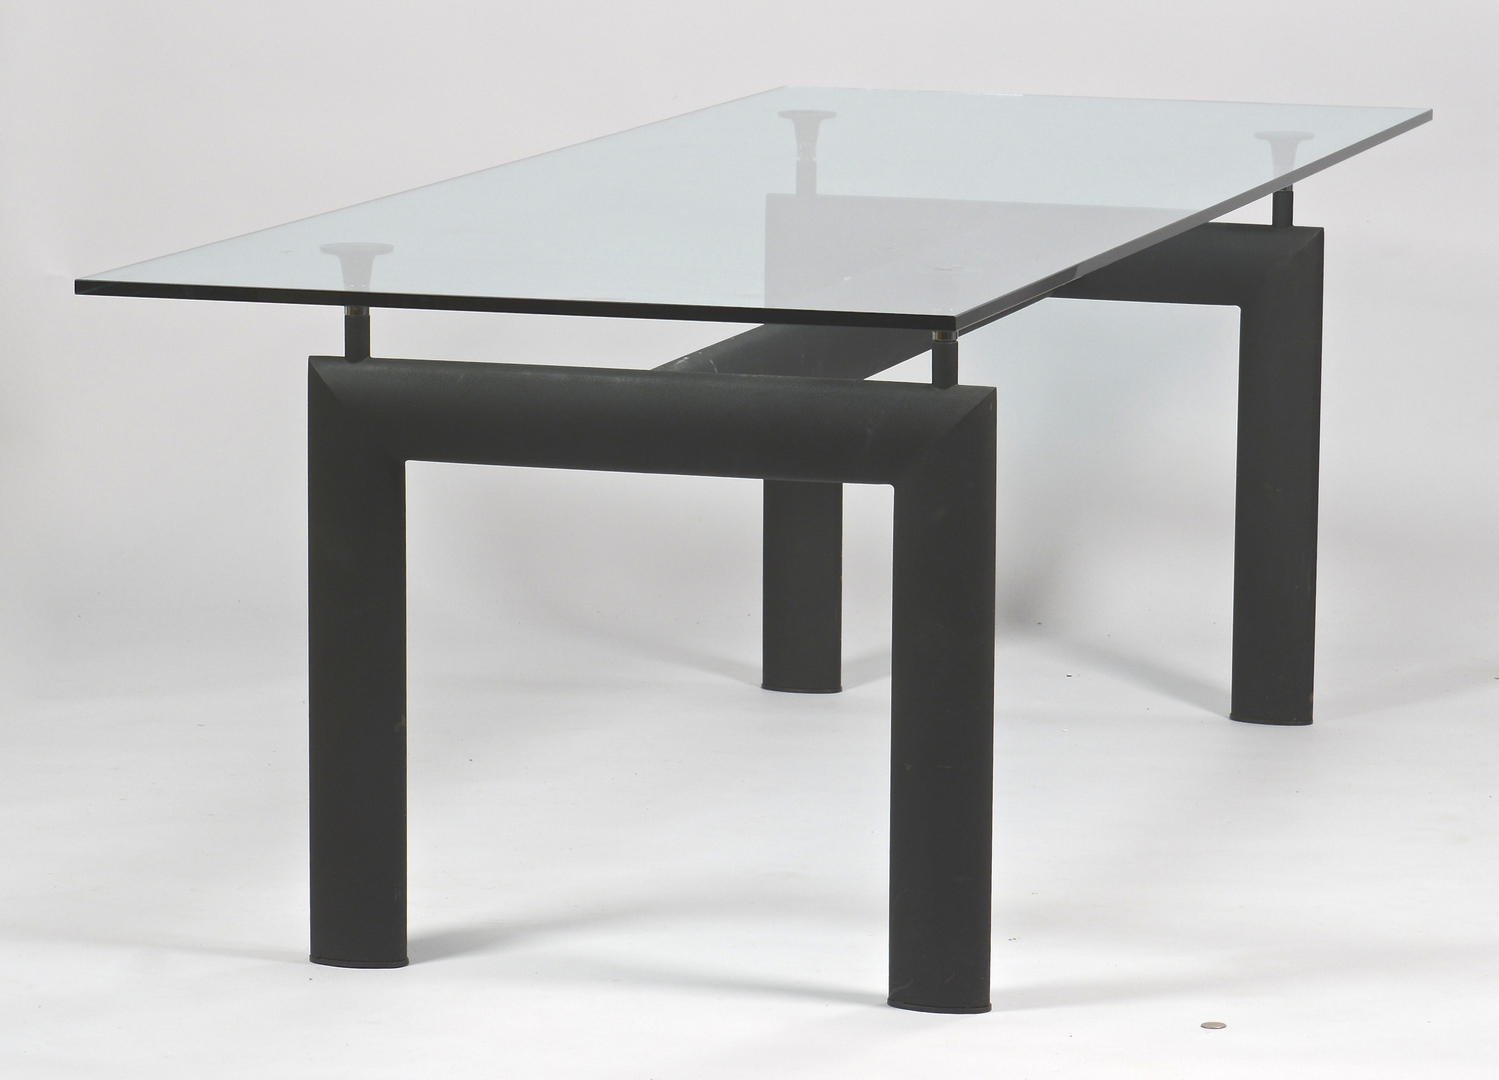 Lot 450 Le Corbusier Lc6 Glass Dining Table